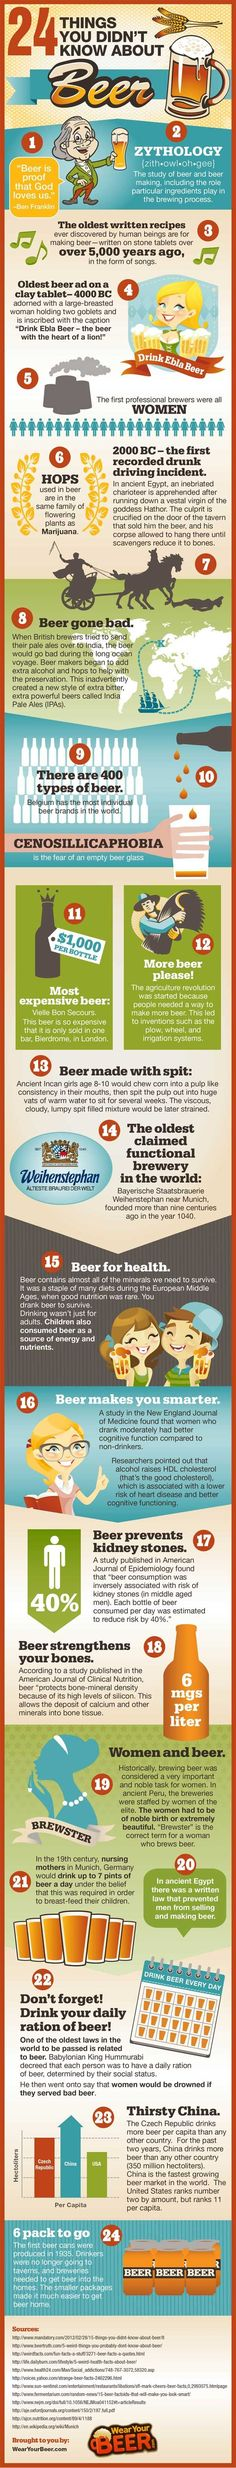 24 Things you didn't know about Beer - www.coolinfoimage...